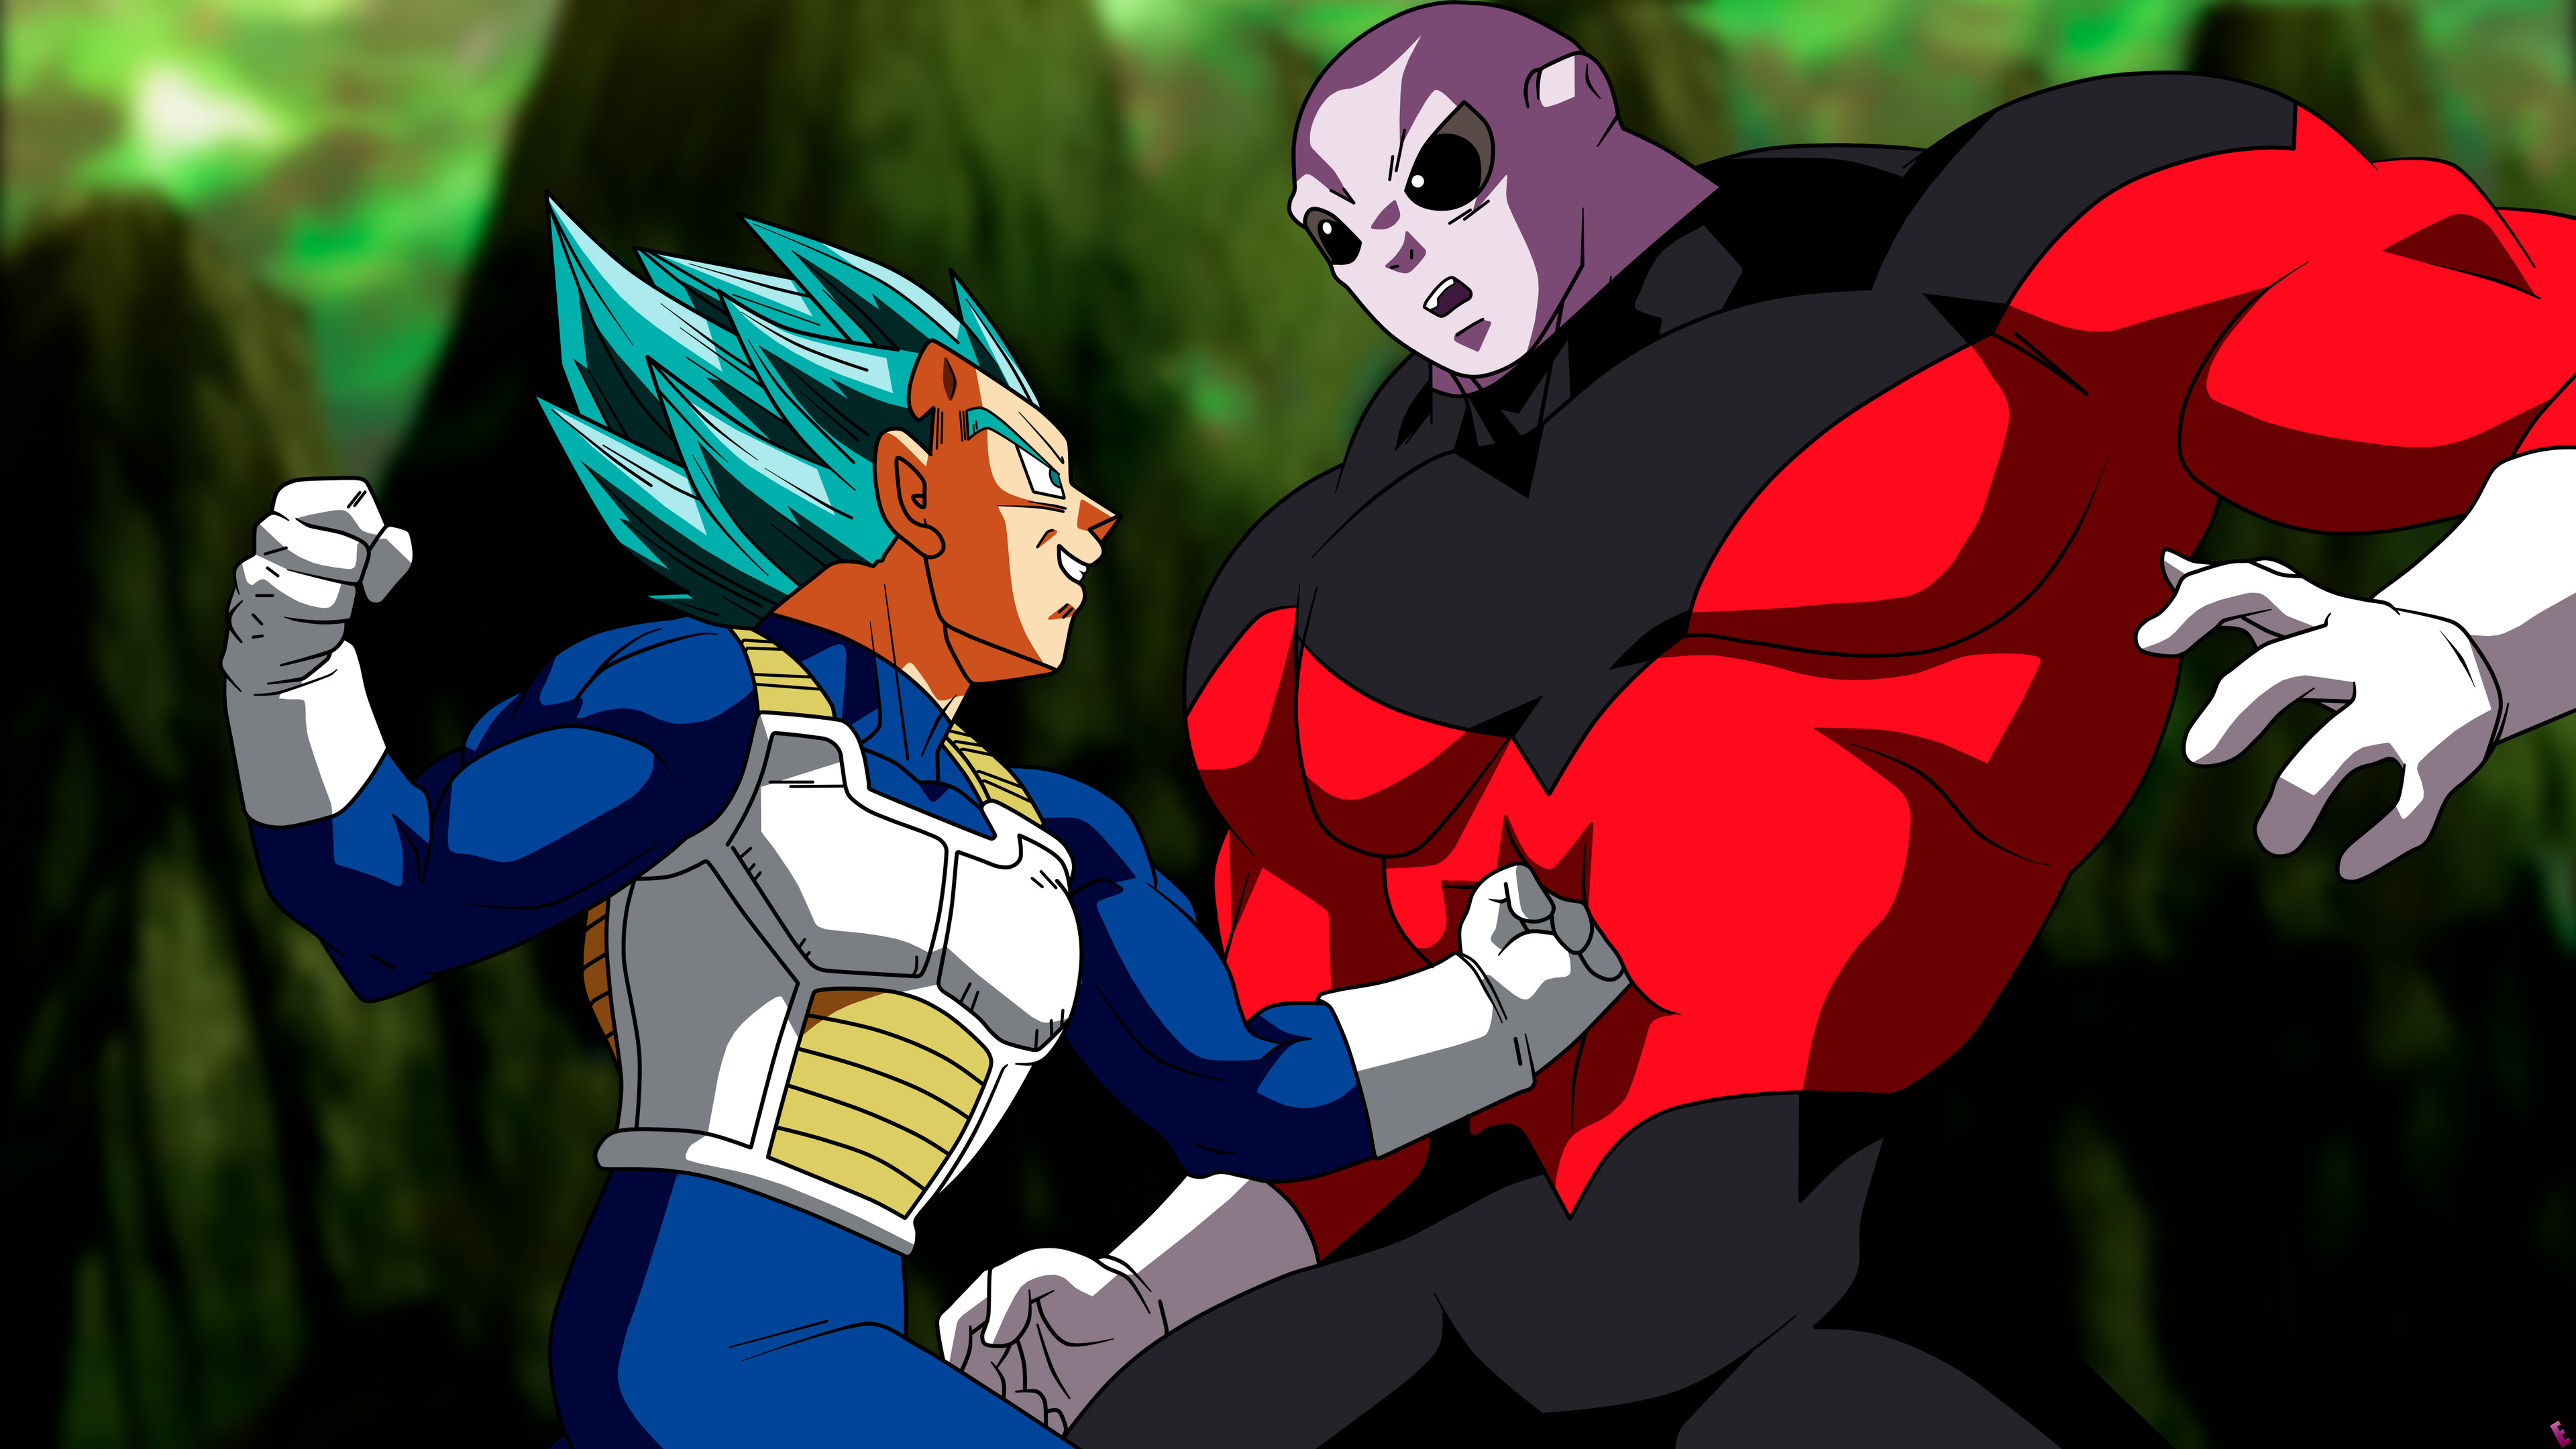 vegetta vs jiren dragon ball super 1541973940 - Vegetta Vs Jiren Dragon Ball Super - hd-wallpapers, dragon ball super wallpapers, artwork wallpapers, artist wallpapers, anime wallpapers, 4k-wallpapers